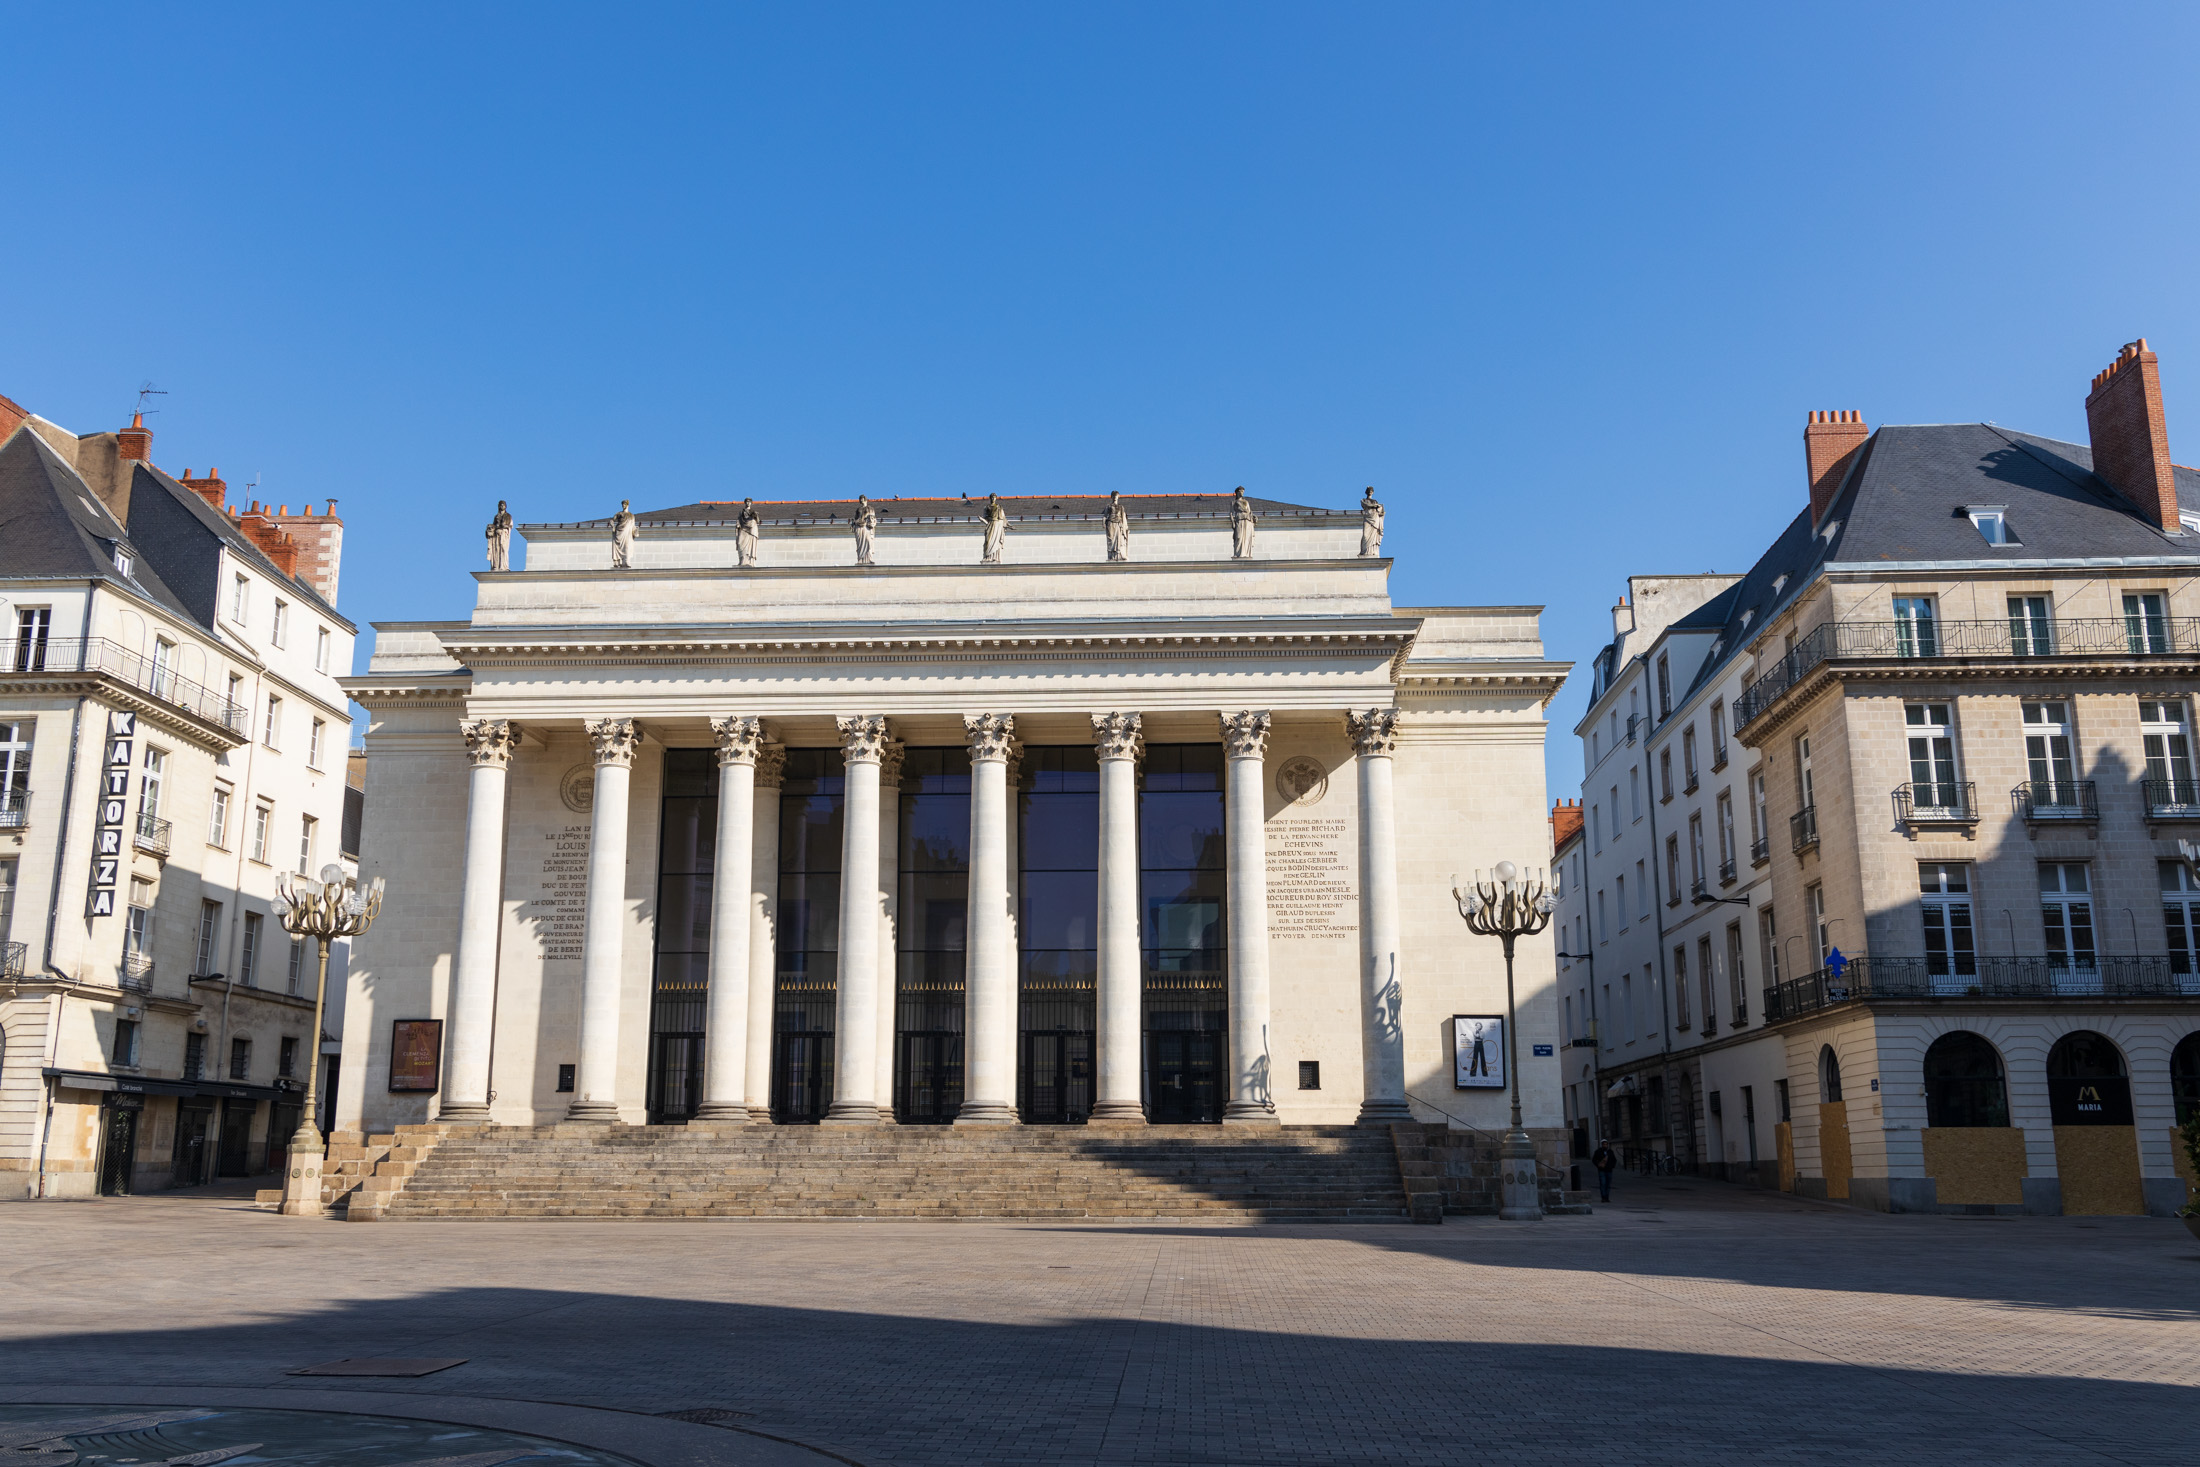 Place Graslin in Nantes is empty. Nantes, France - April 2nd 2020.Une place Graslin vide. Nantes, France - 2 avril 2020.